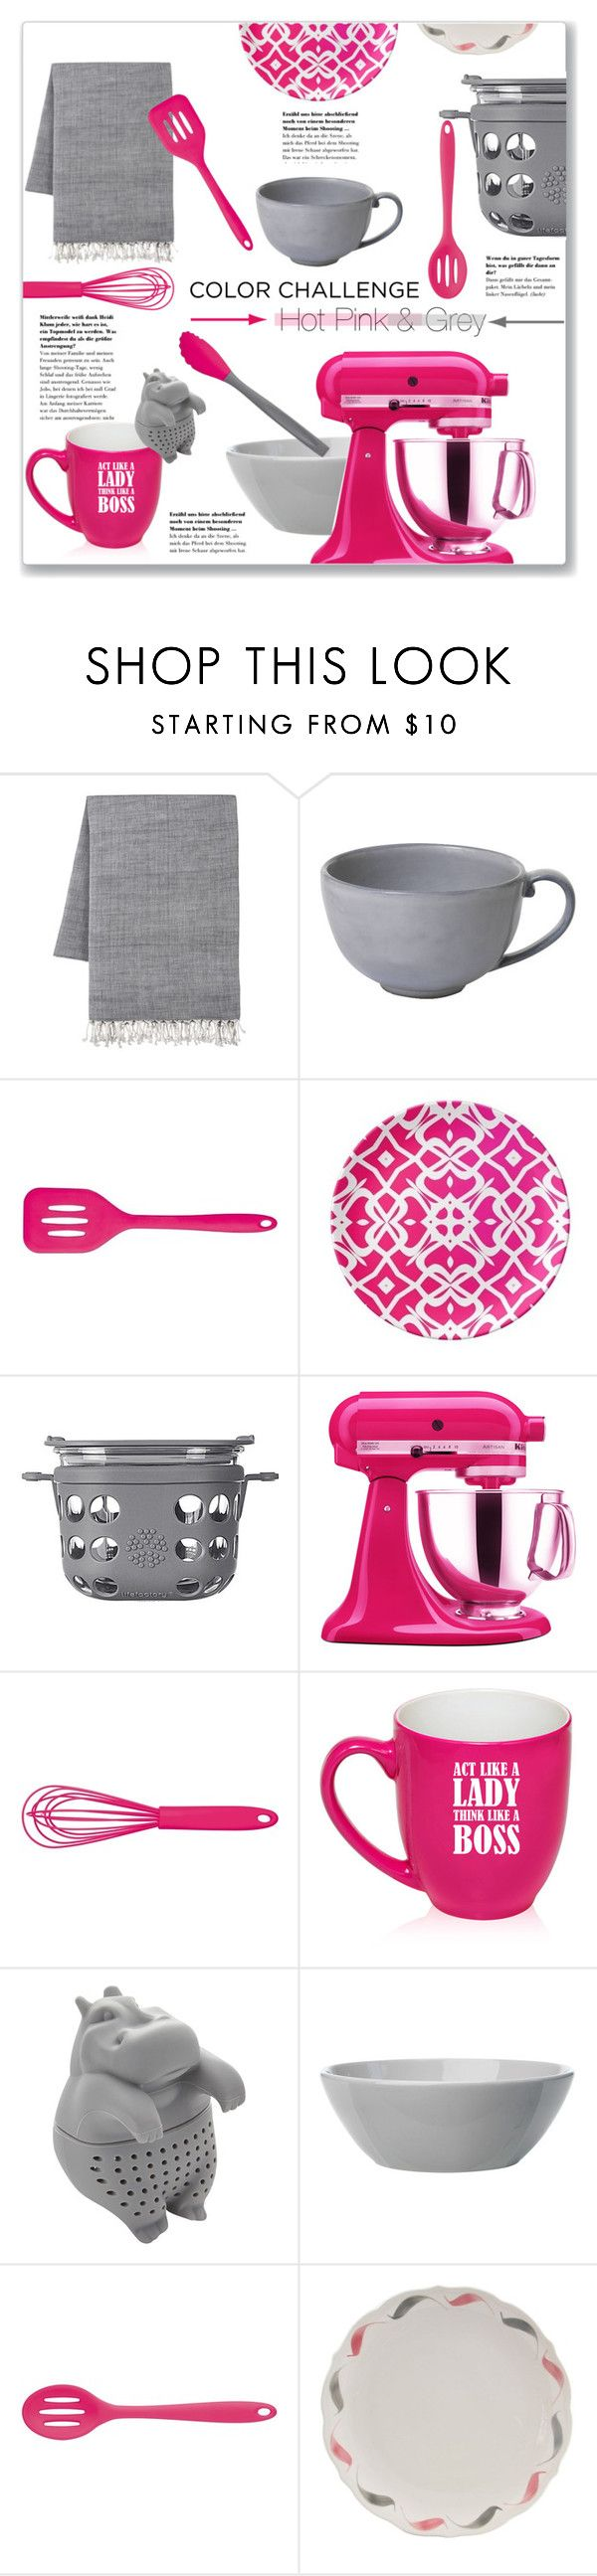 """Hot Pink & Grey Kitchen Accessories"" by kellylynne68 ❤ liked on Polyvore featuring interior, interiors, interior design, home, home decor, interior decorating, Juliska, Kitchen Craft Colourworks, Lifefactory and KitchenAid"